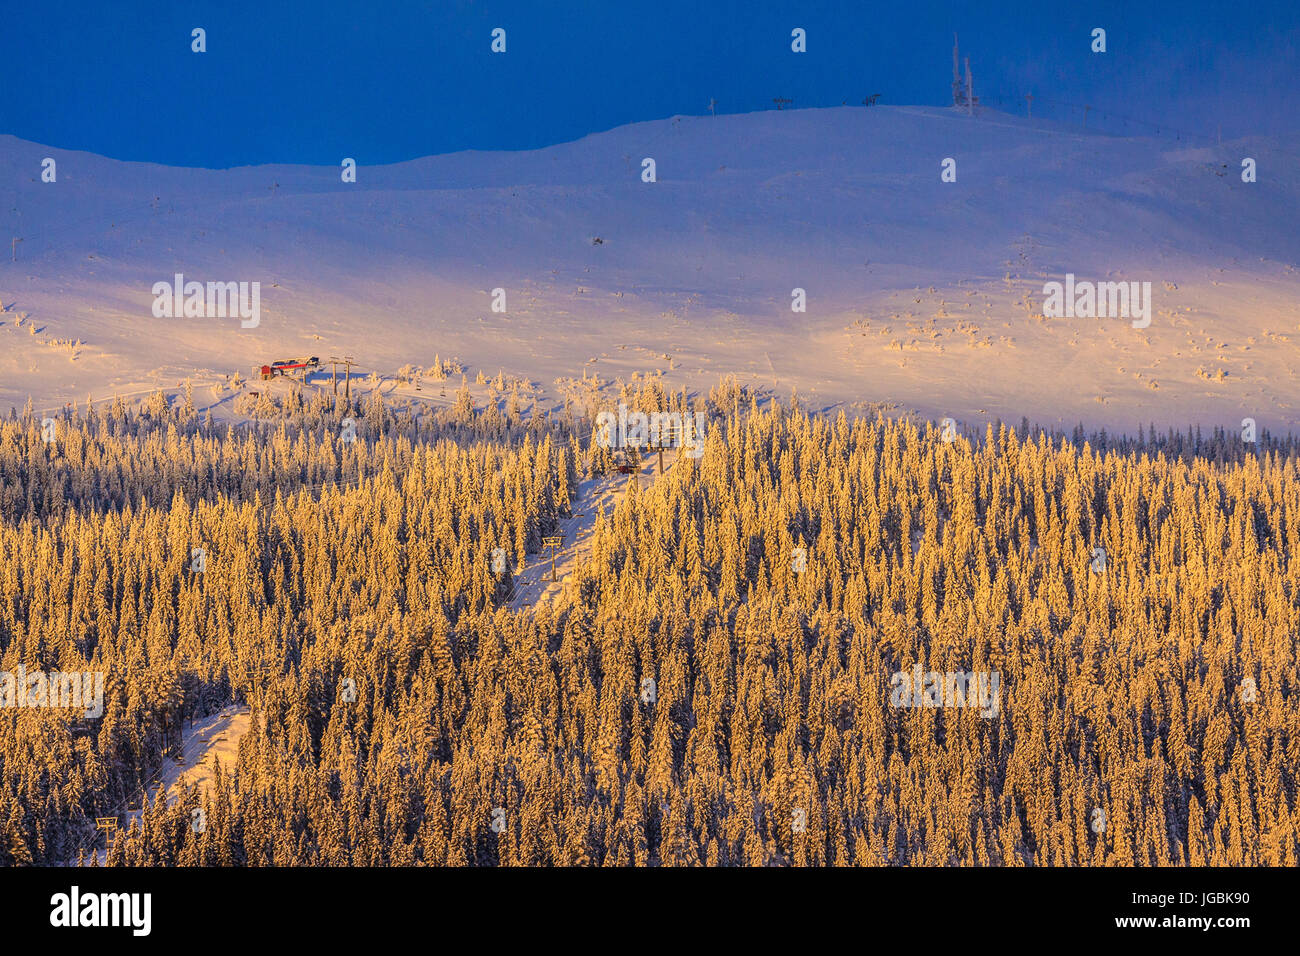 Alpine skiing resort in the mountains of Trysilfjellet, Trysil, Norway - Stock Image